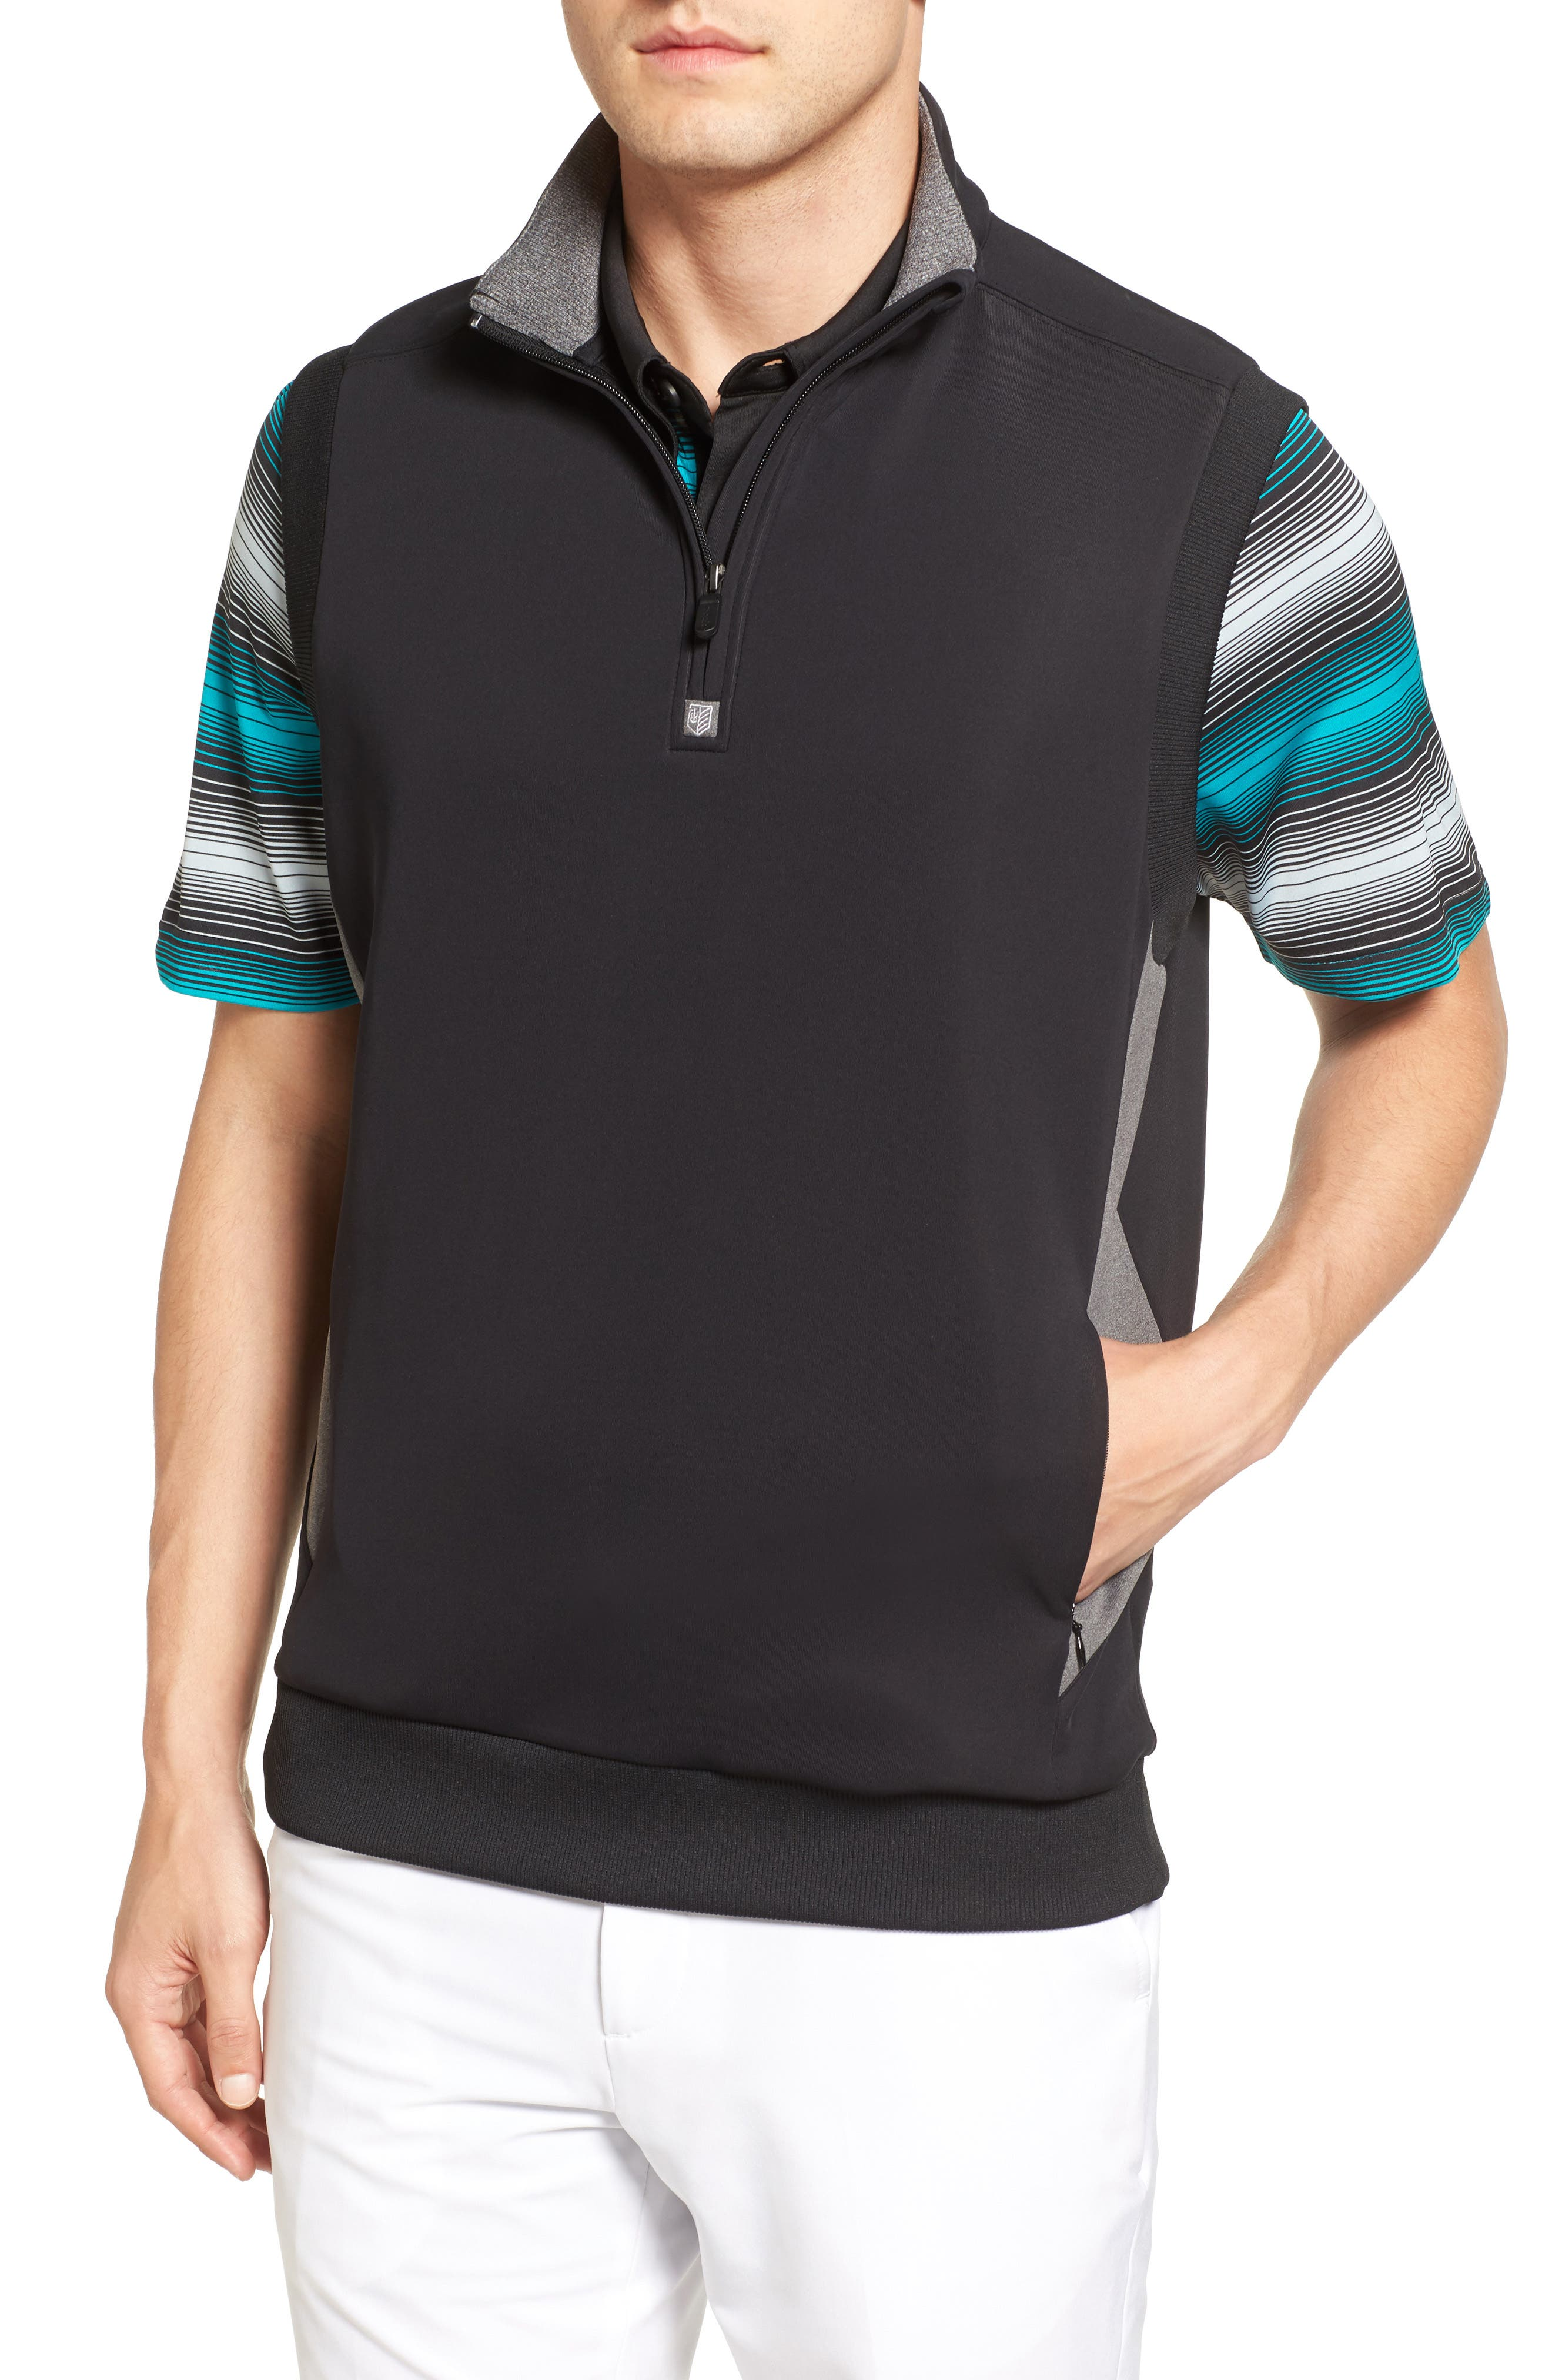 Alternate Image 1 Selected - Bobby Jones Rule 18 Tech Quarter Zip Vest